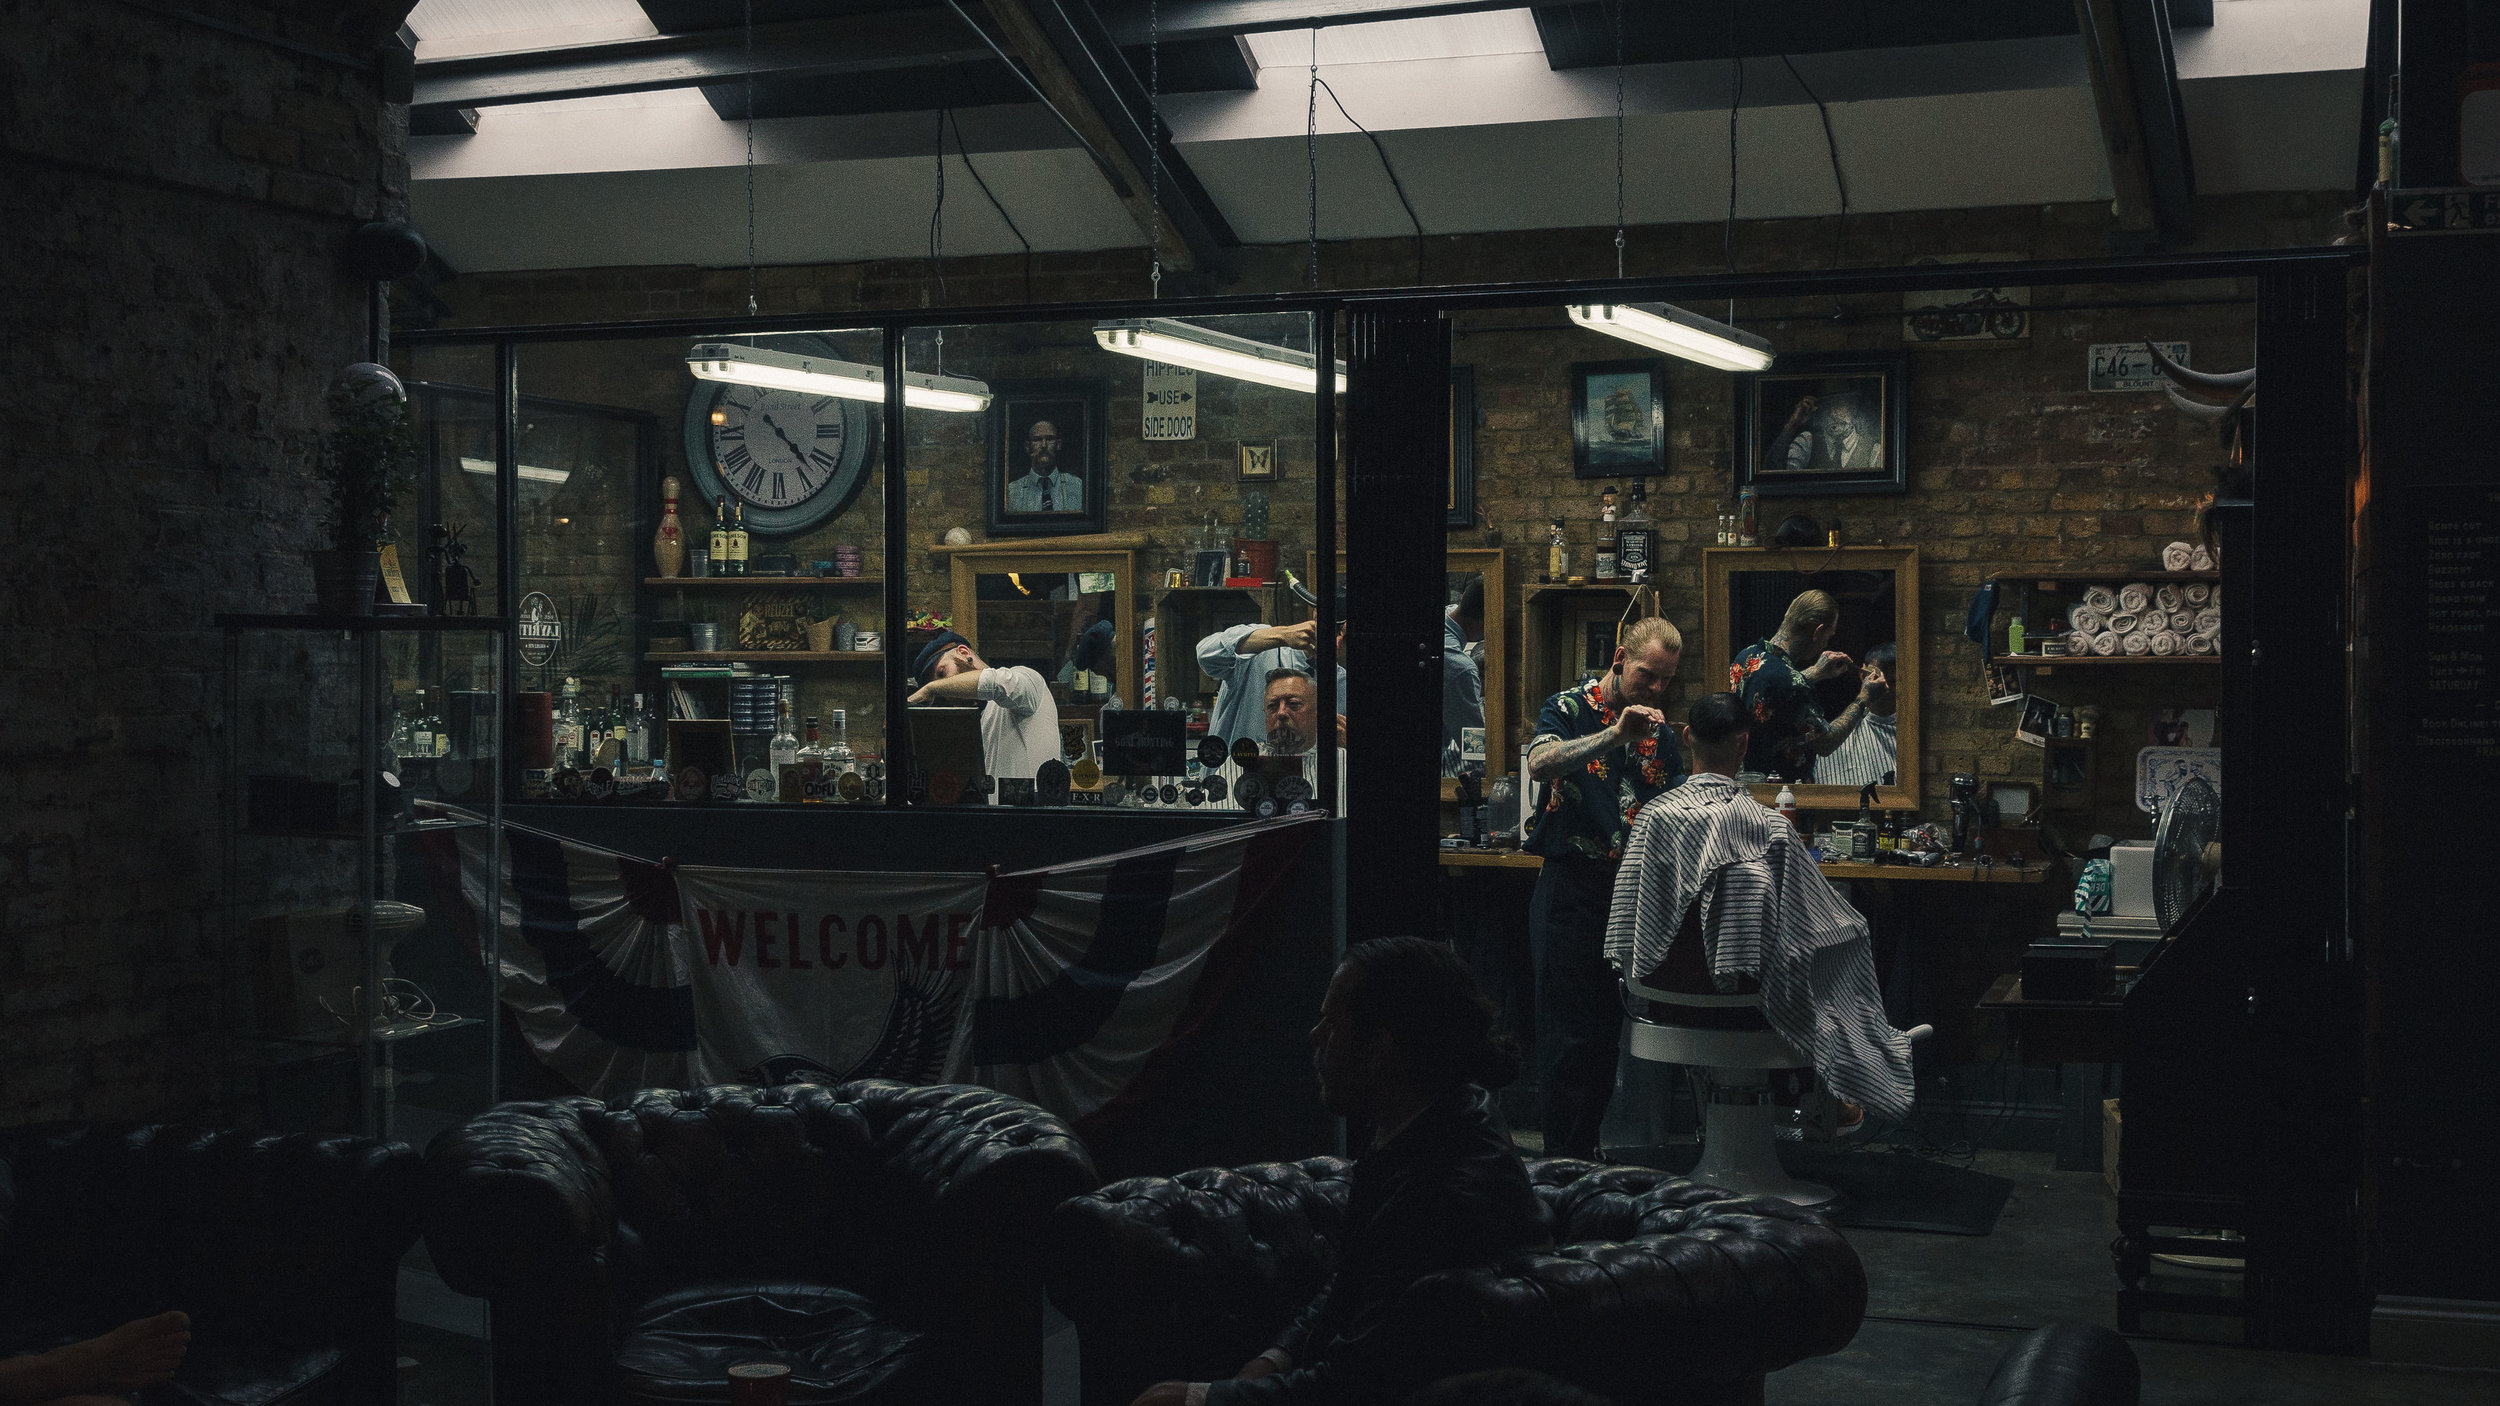 Barbershop in the Bike Shed.